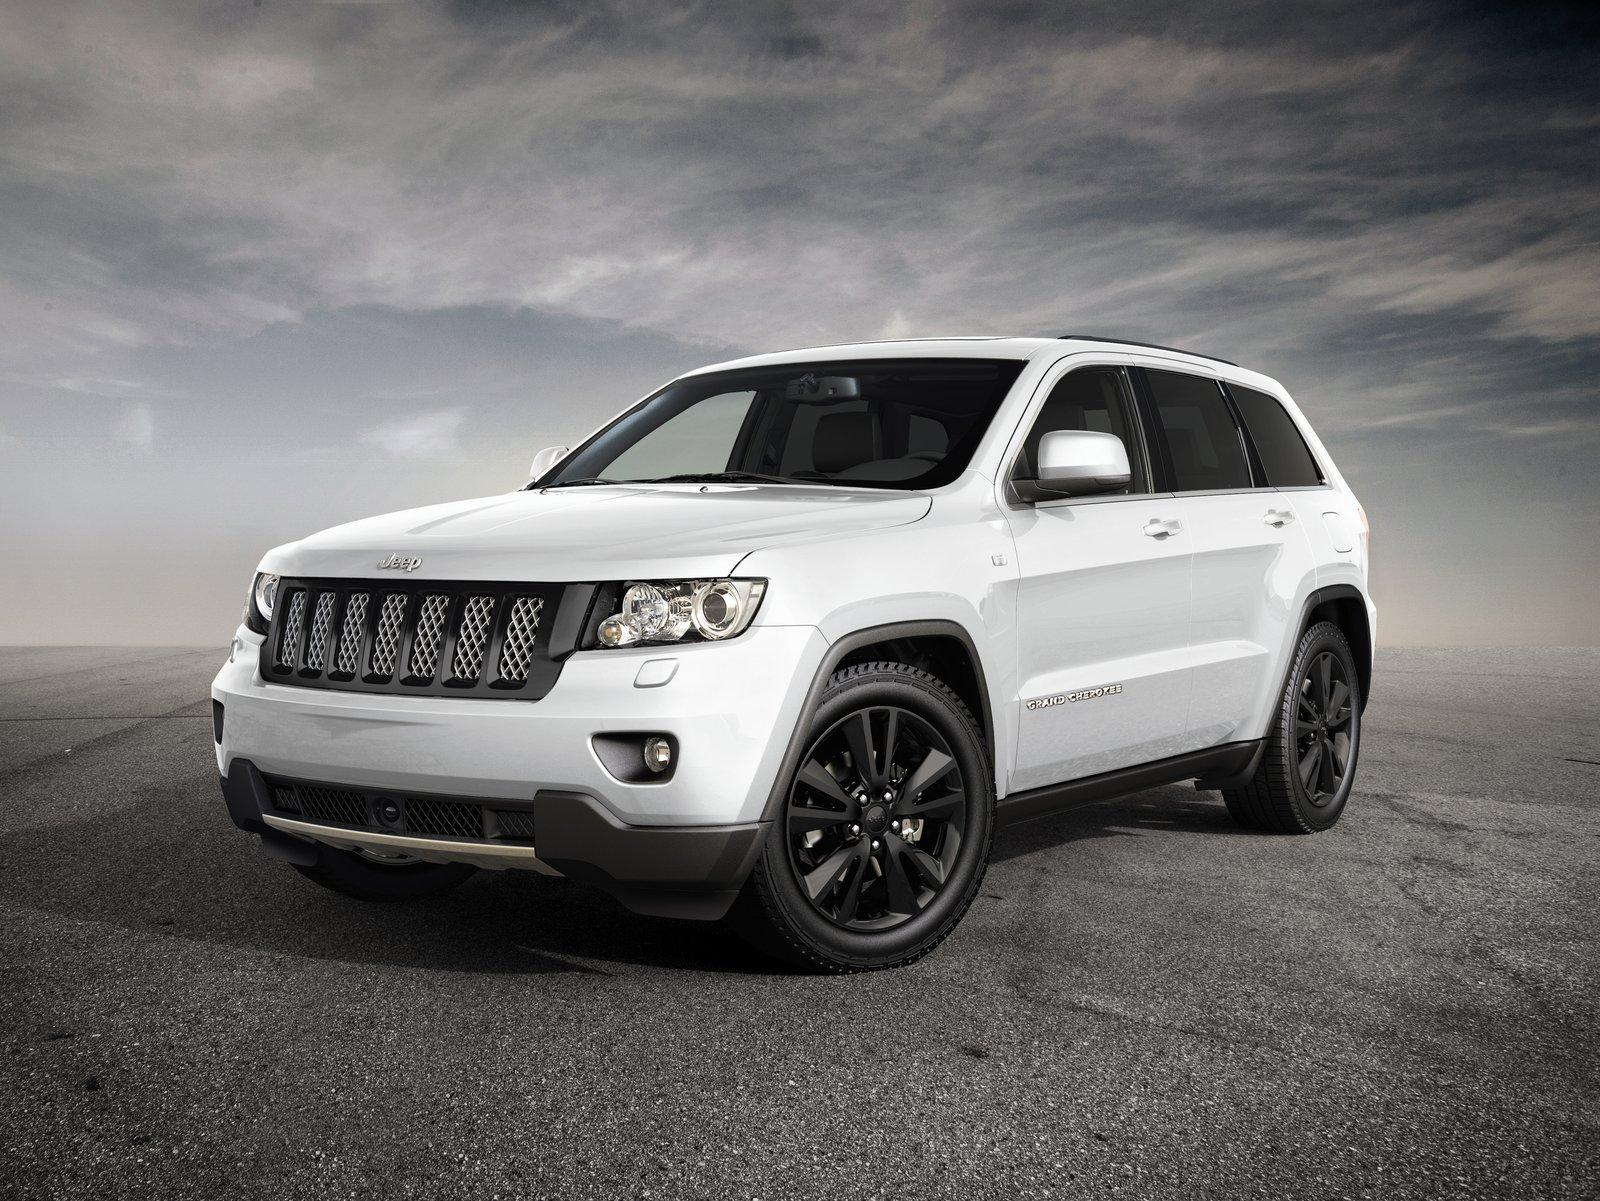 2012 Jeep Grand Cherokee Sports Concept 2012 Jeep Grand Cherokee Sports Concept revealed